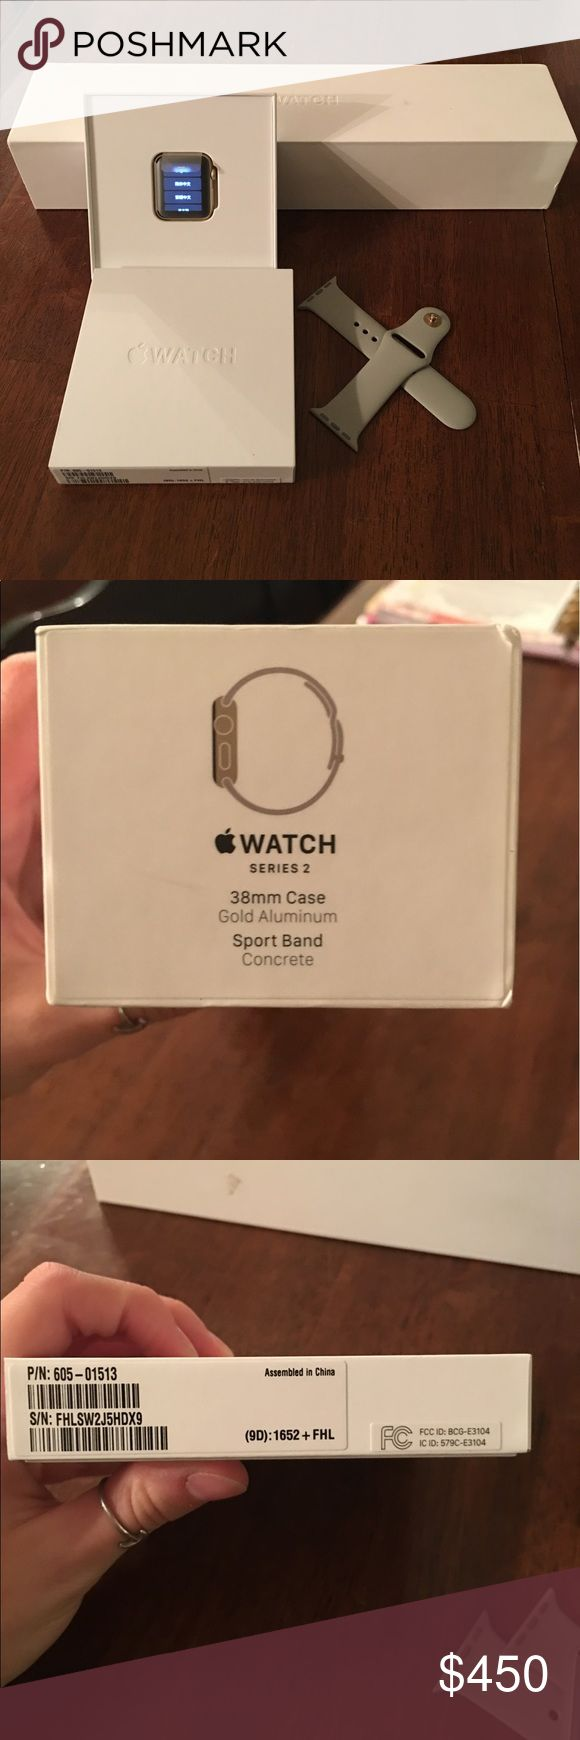 Apple Watch Series 2 Series 2 38mm. I will not sell through here, 🅿️🅿️ or merc only! Due to fees! I bought it and wore it twice, dropped it on tile floor and shattered the screen. I sent it to be replaced and when I picked it up they said was beyond repair so I was getting a new one for the cost of the repair ($229 + tax) so it is a brand new Watch. I decided I wanted the rose gold one instead. It comes with the original box, the new box (smaller one in picture), original band, and…